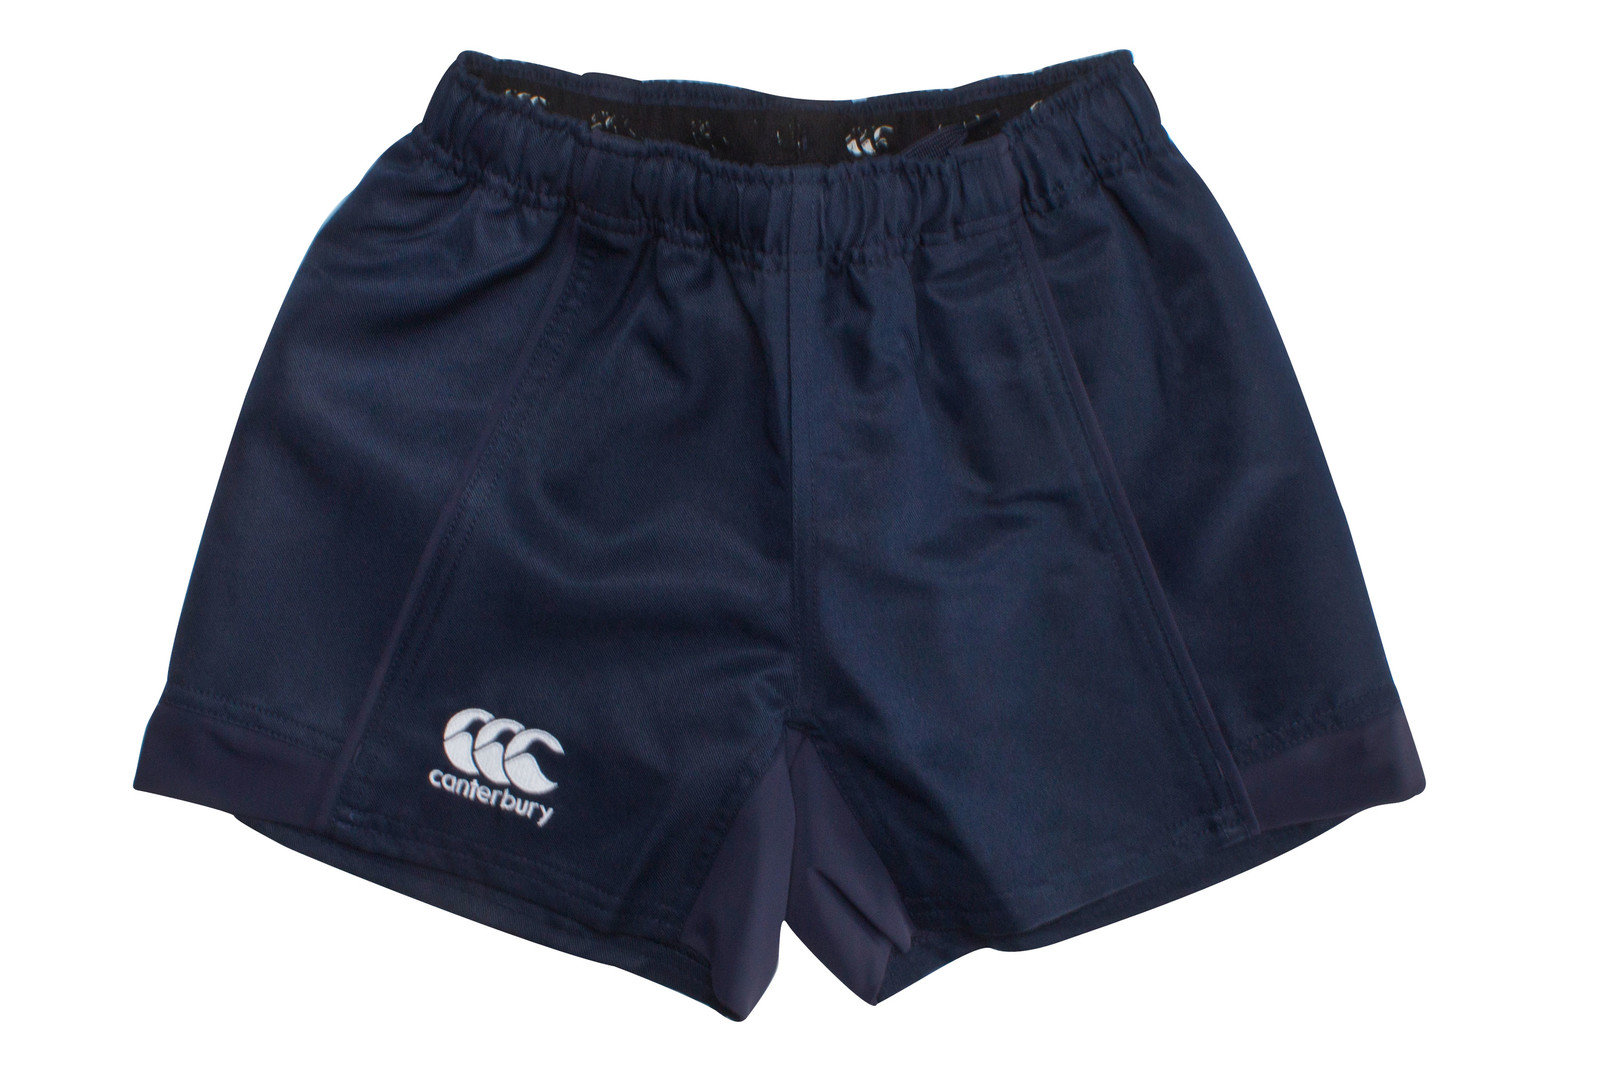 Image of Advantage Youth Rugby Shorts